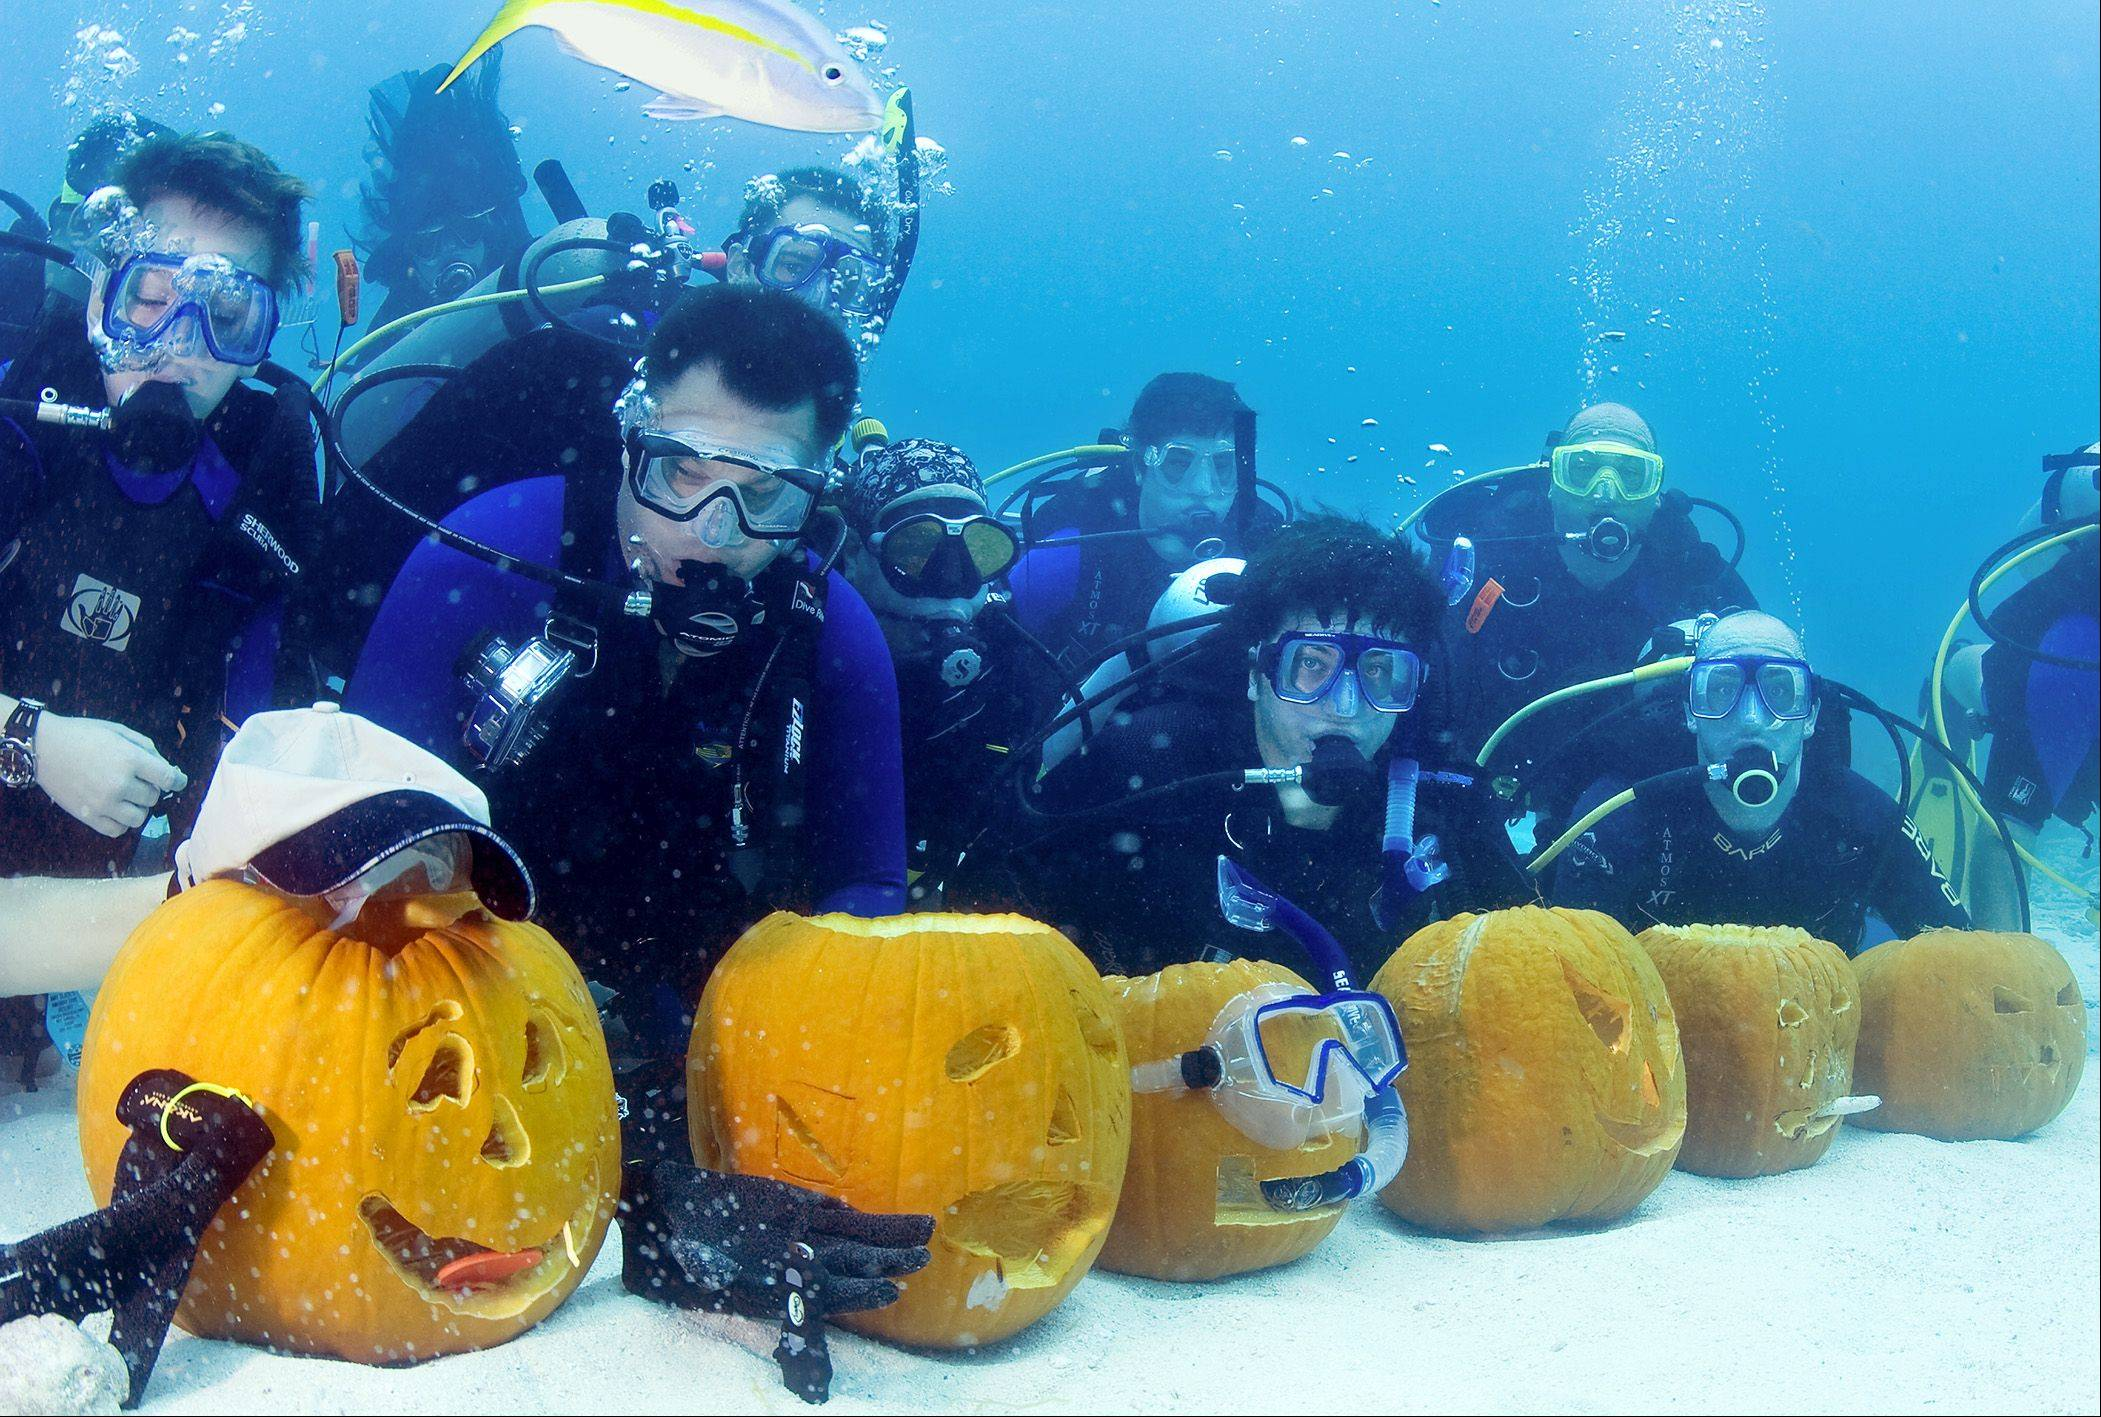 It's even possible to carve a pumpkin under water, as these divers demonstrated in 2008 in the Florida Keys National Marine Sanctuary off Key Largo, Fla.